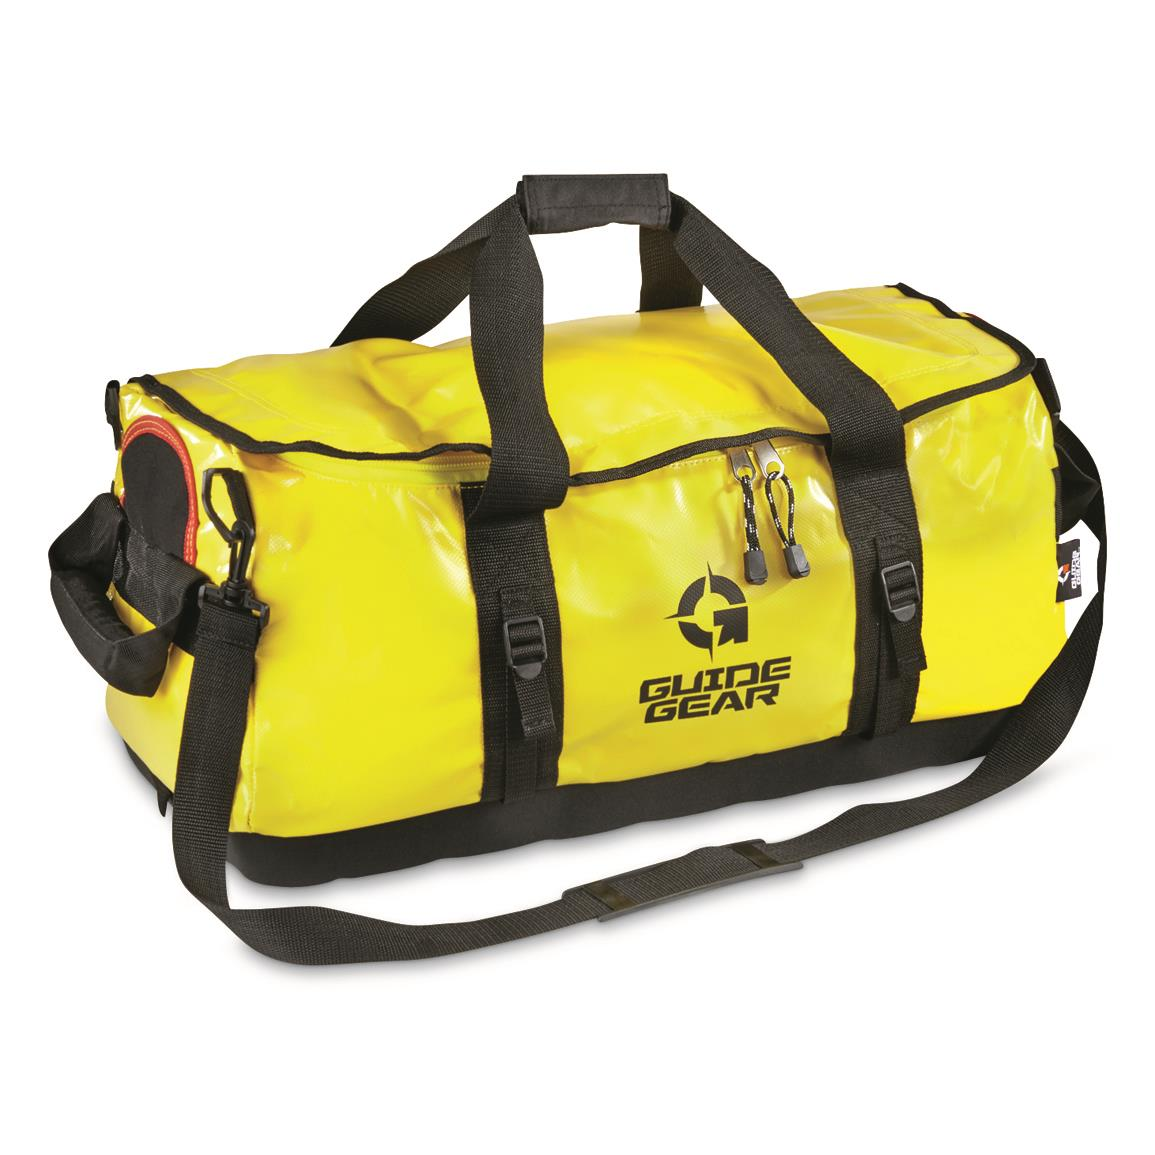 Waterproof-Floating-Duffel-Bag-Boat-Canoe-Kayak-Jet-Ski-Large-Dry-Pack-Sports